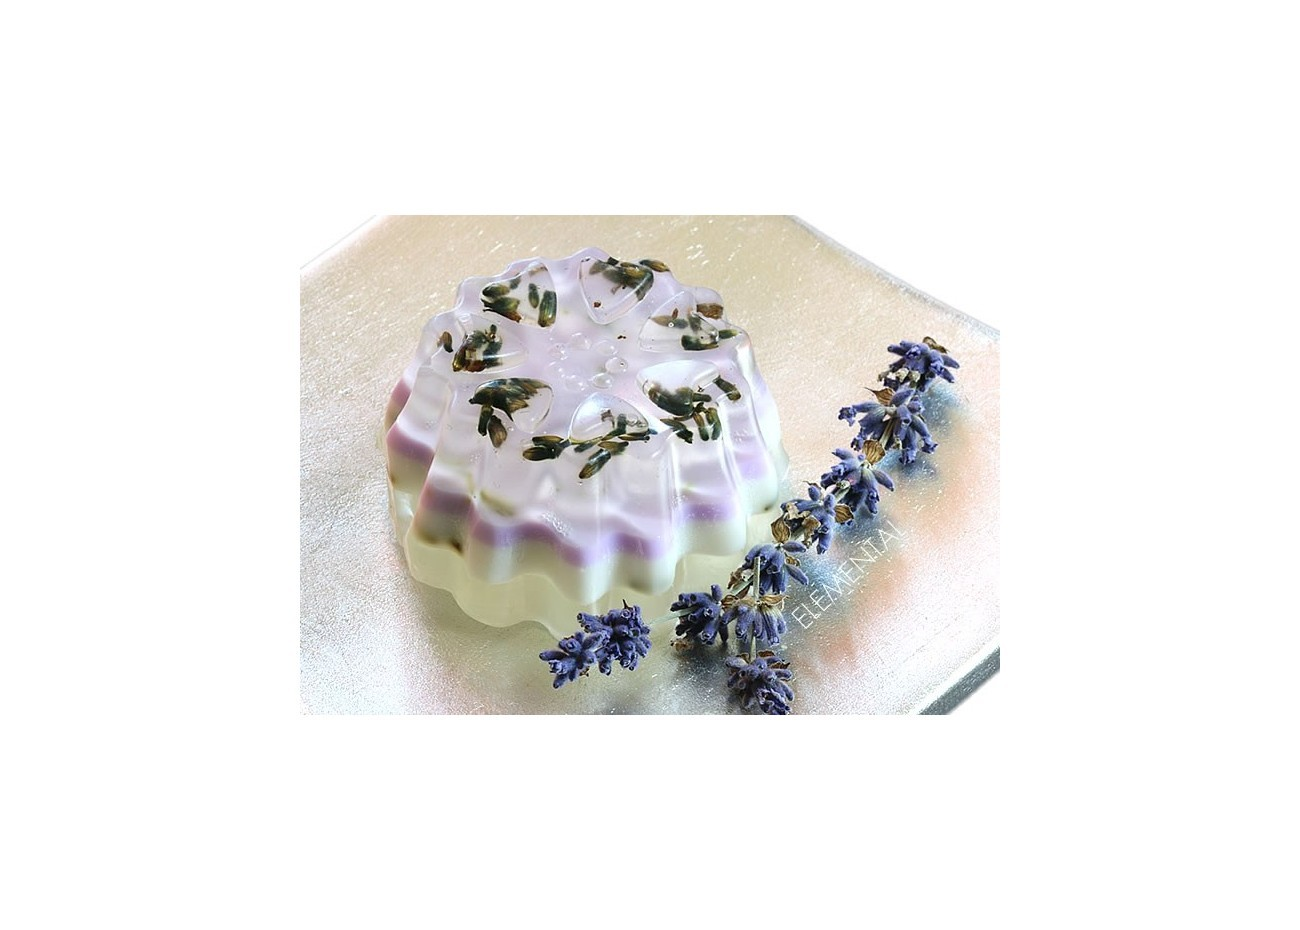 Layered Soap, Lavender & Lilac